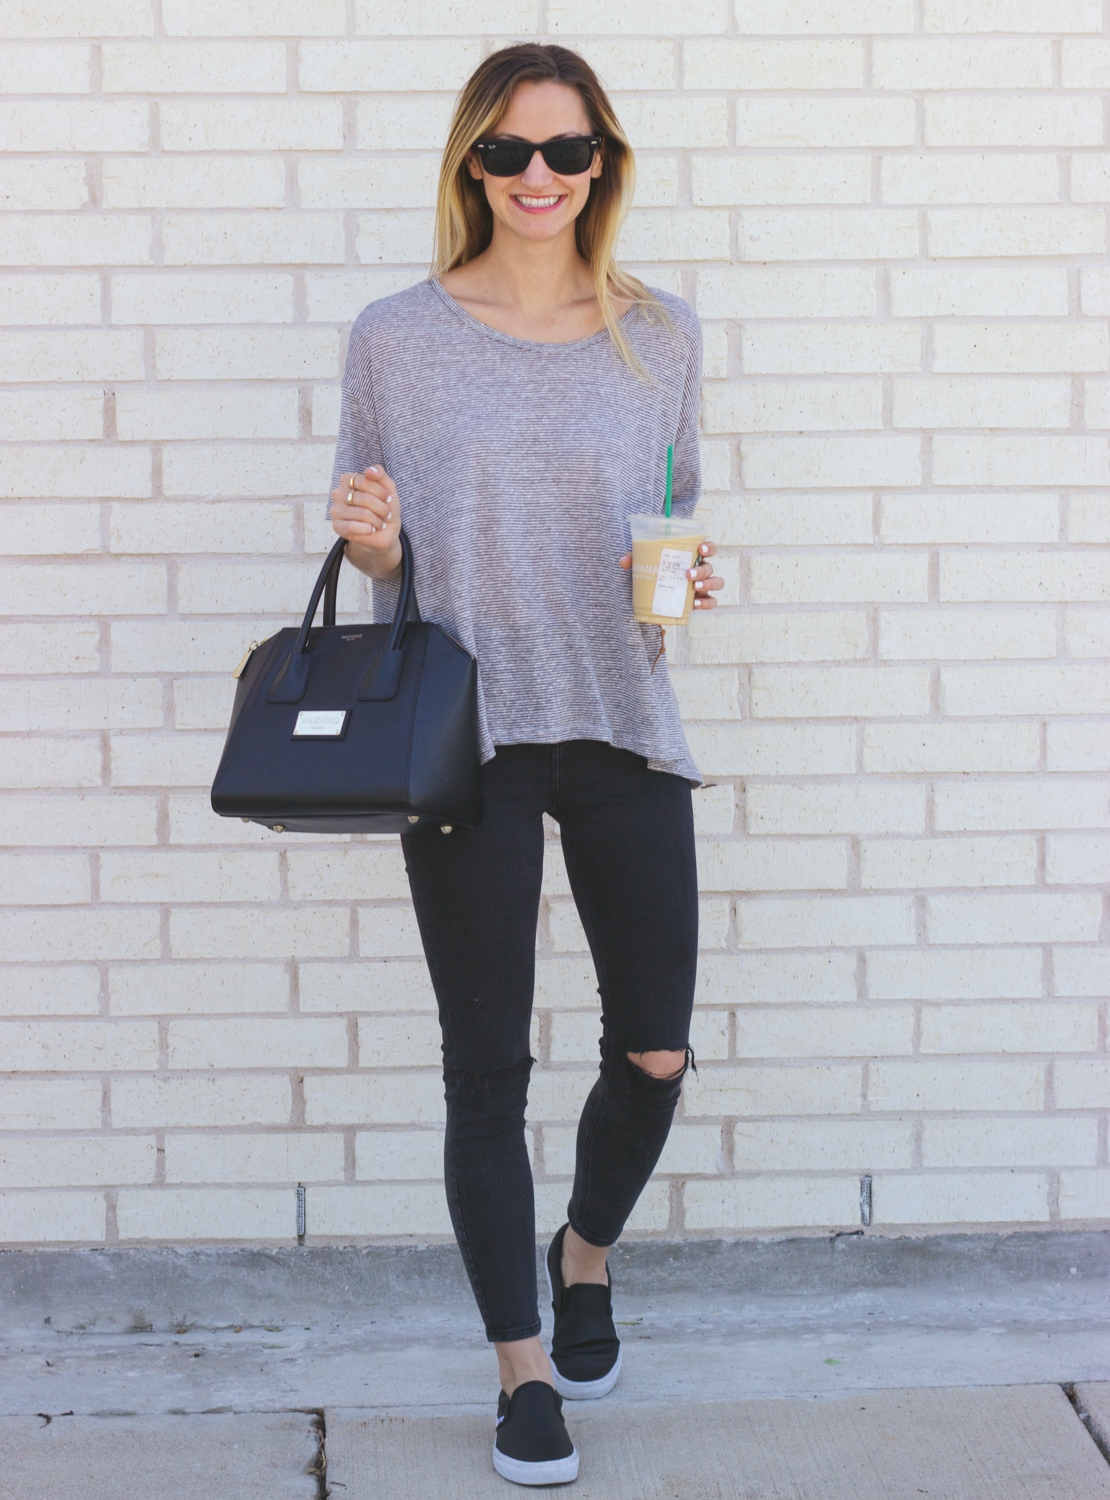 Casual Tee u0026 Slip-On Sneakers - LivvyLand | Austin Fashion and Style Blogger